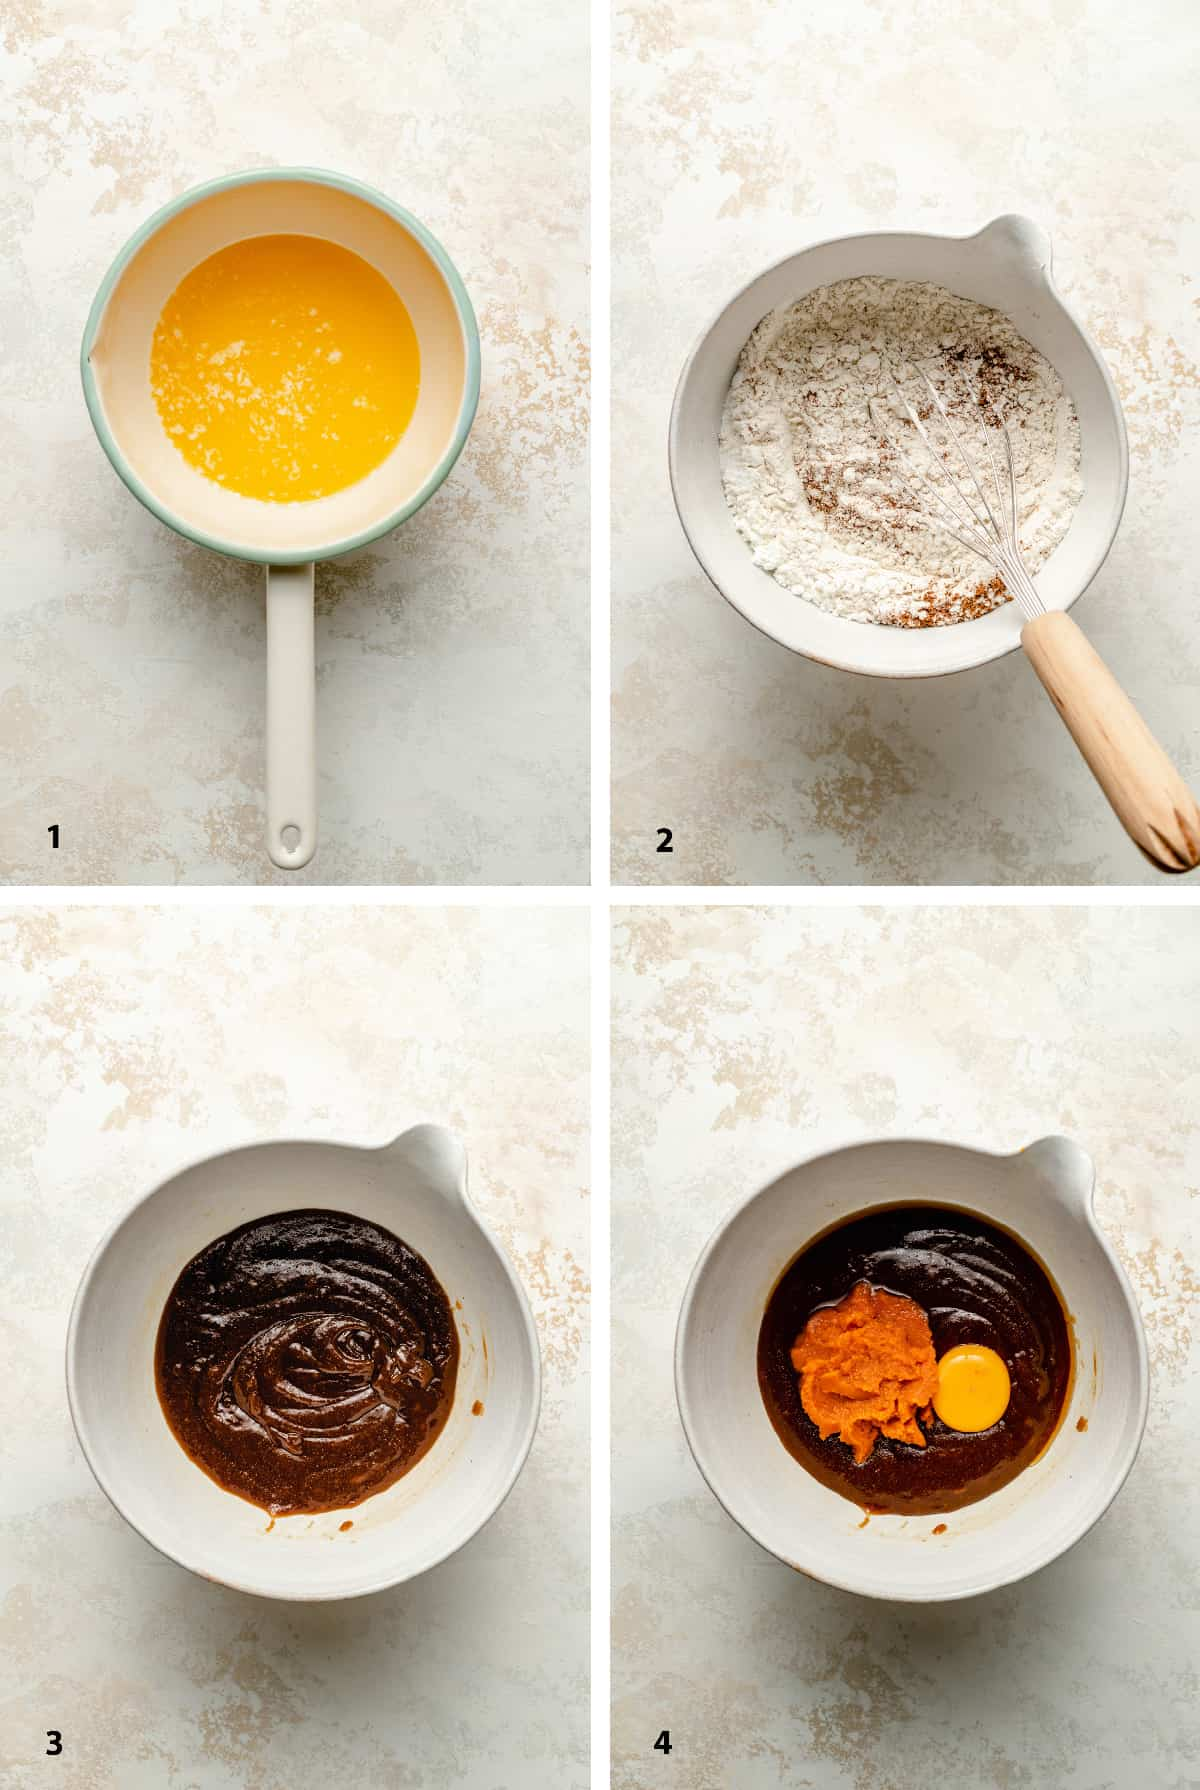 Process steps of making the cookie batter showing the texture of the melted sugars and butter.